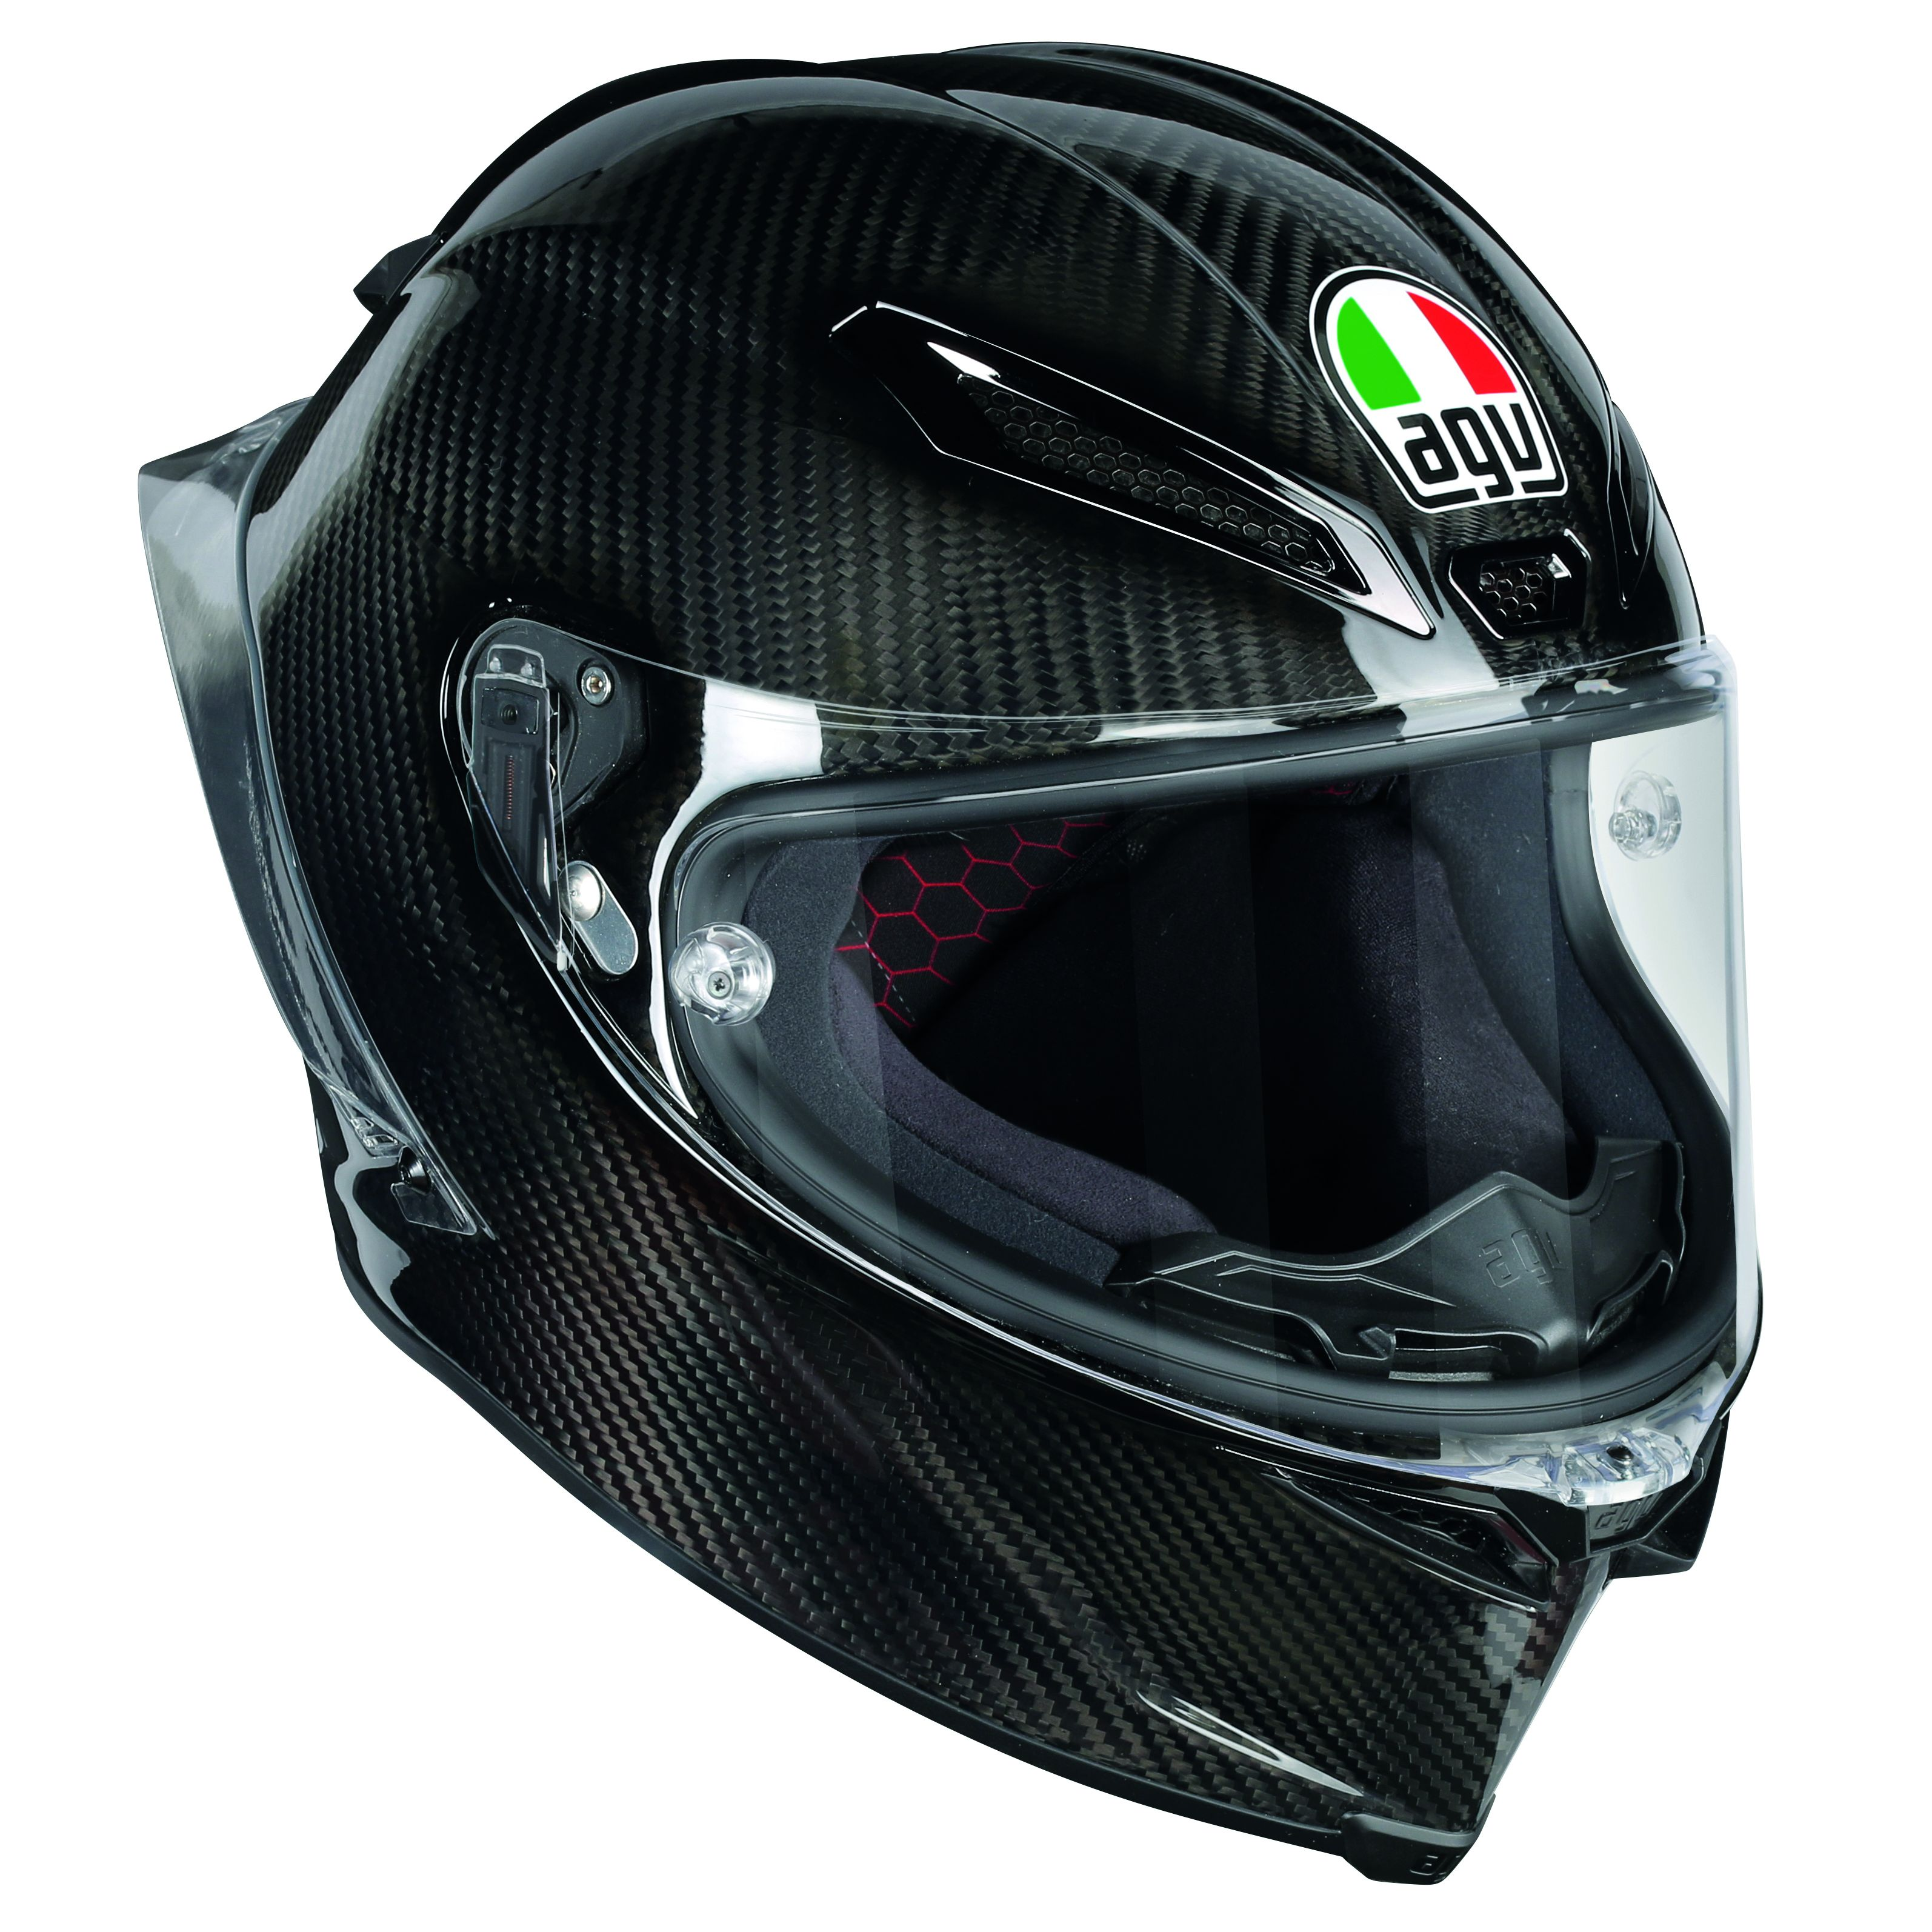 casque agv pista gp r glossy carbon casque int gral. Black Bedroom Furniture Sets. Home Design Ideas